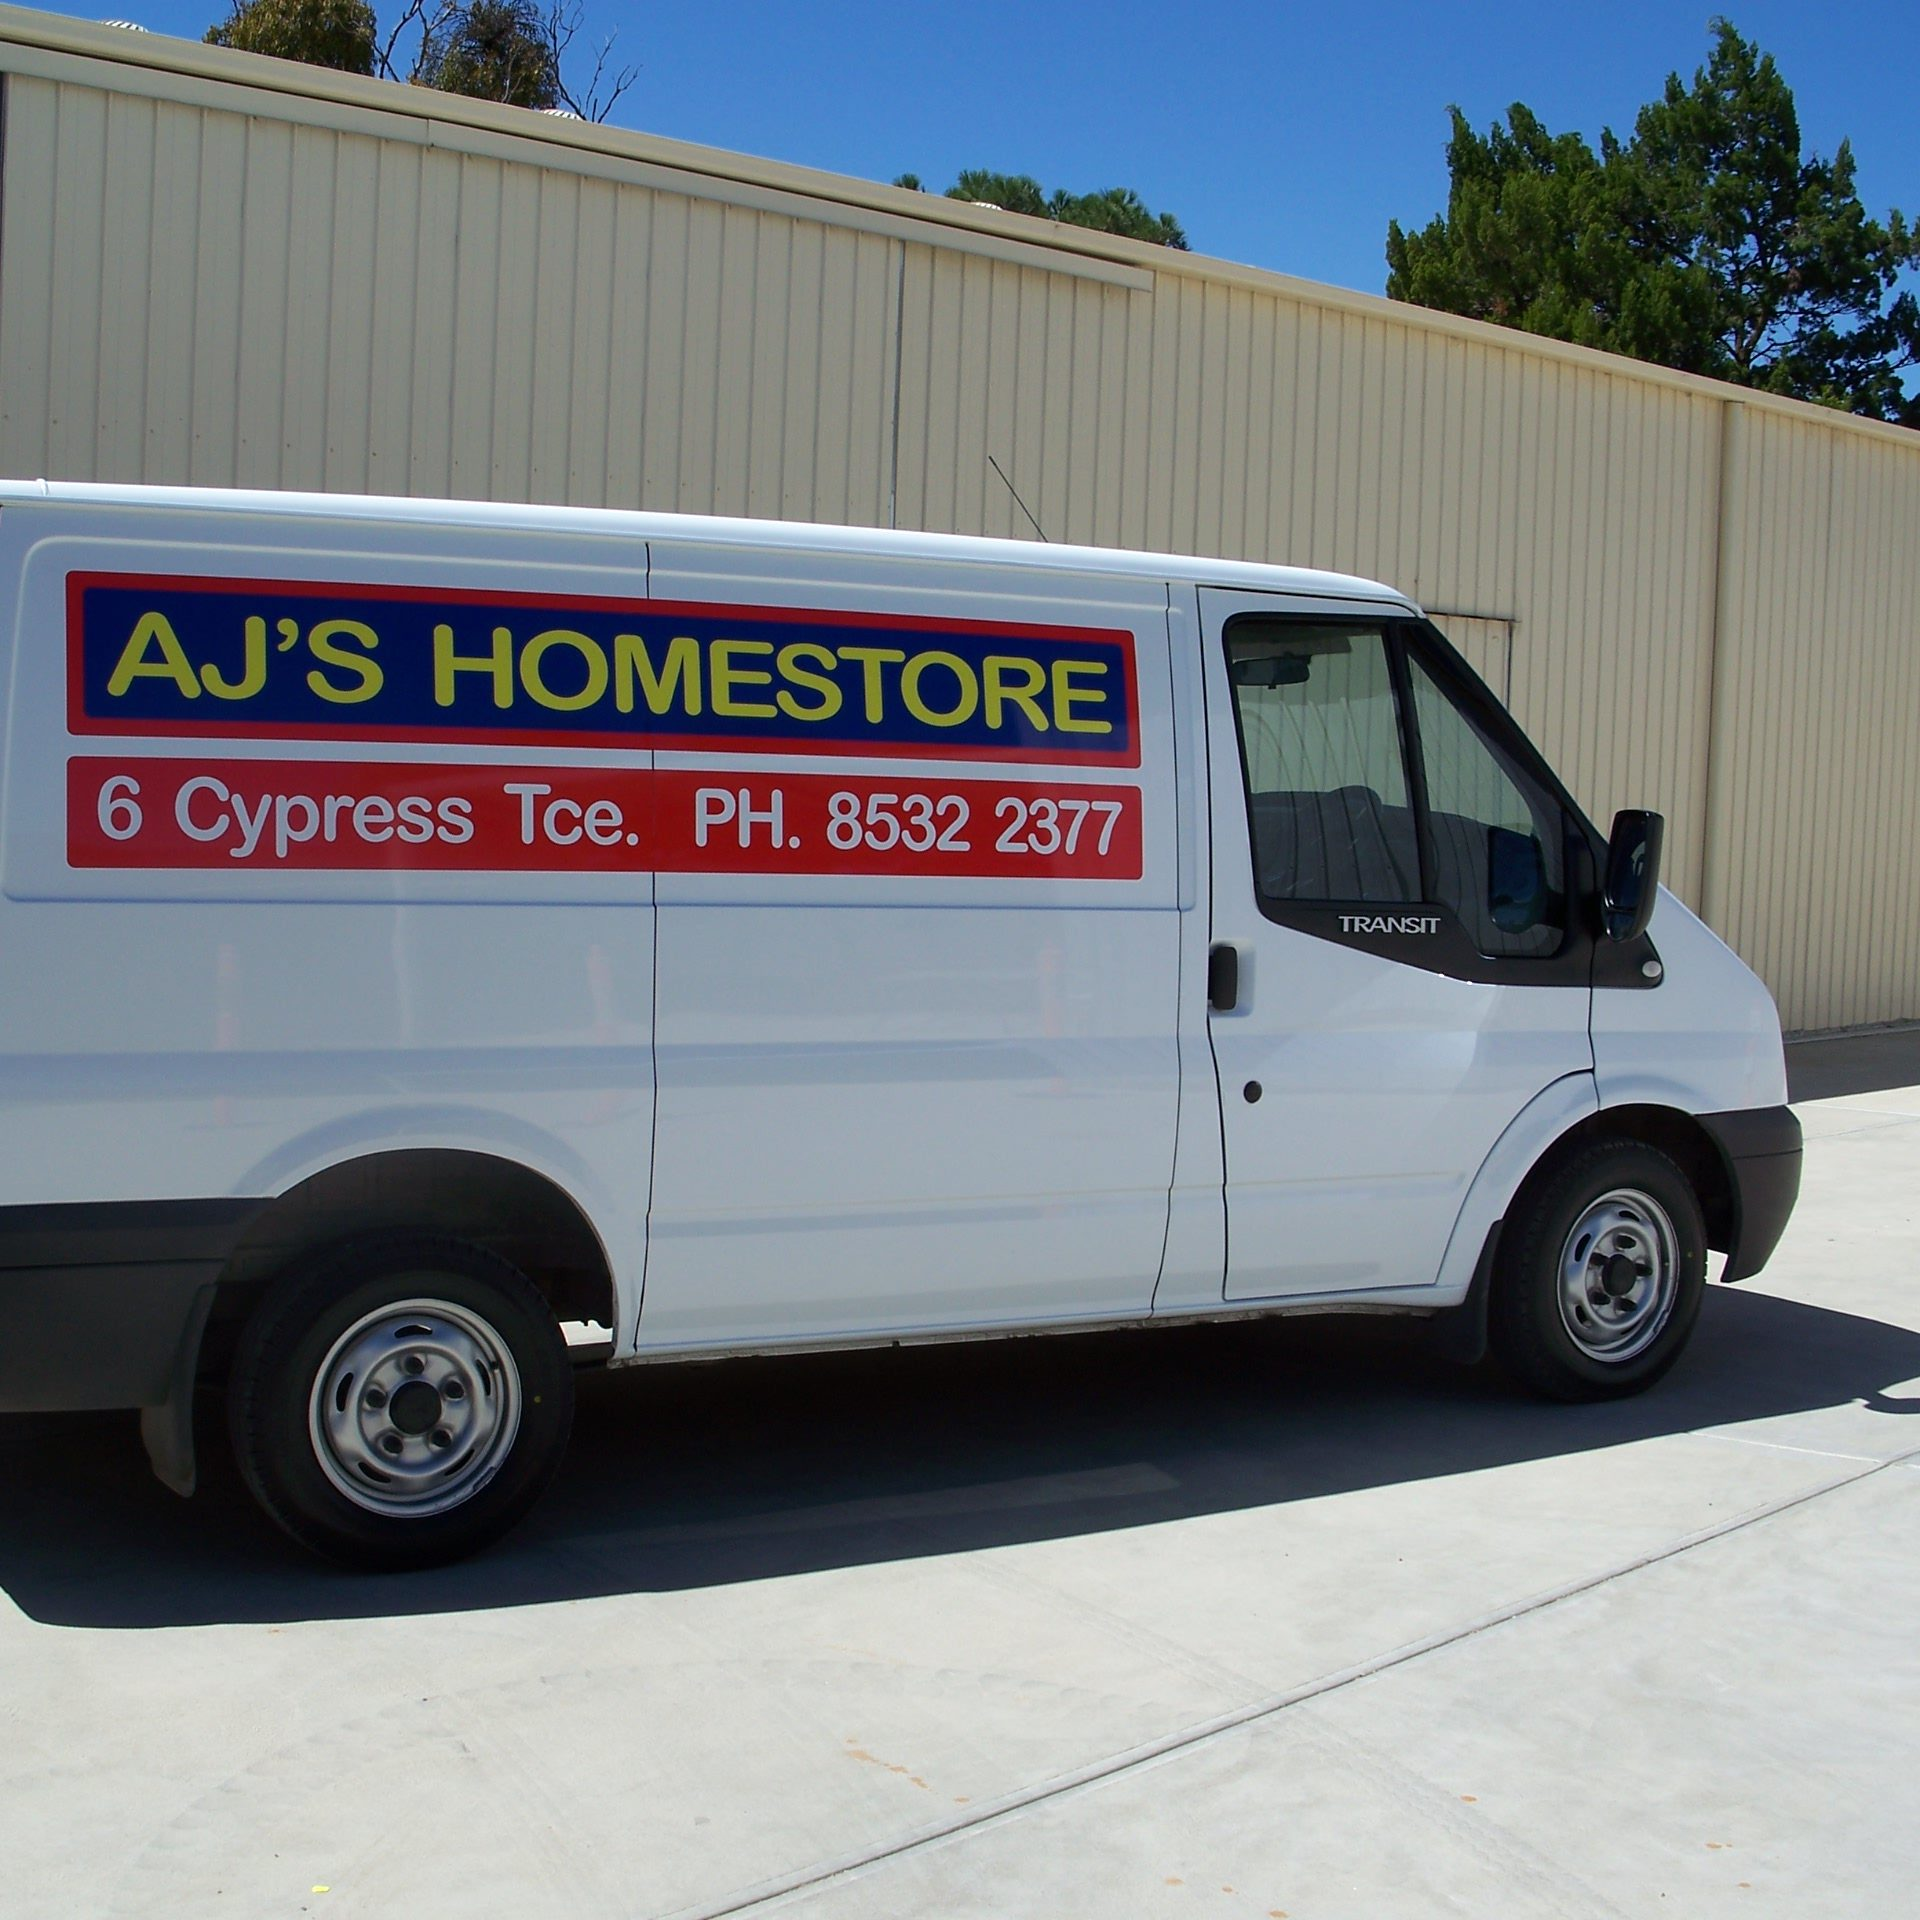 AJ's Homestore, Murray Bridge, South Australia